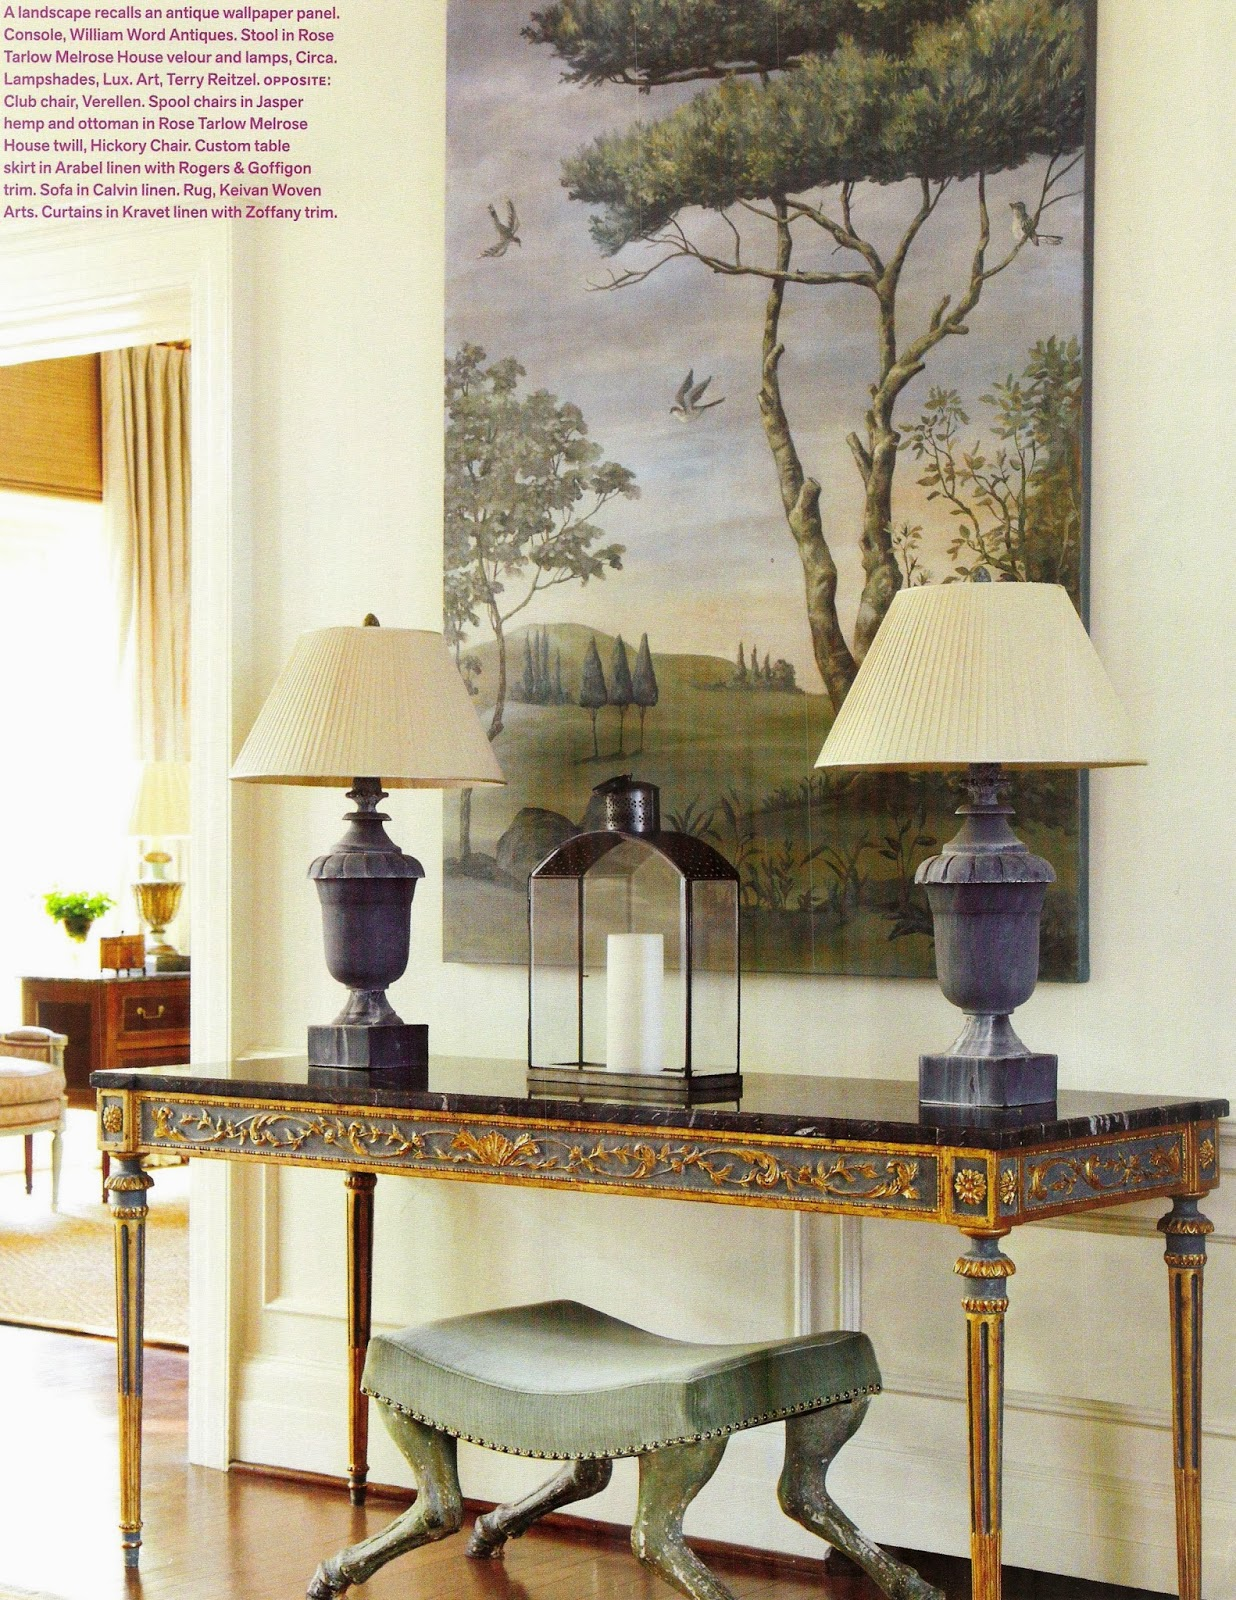 Year of the horse a flippen life a landscape recalls an antique wallpaper panel console william word antiques stool in rose tarlow melrose house velour and lamps circa geotapseo Images